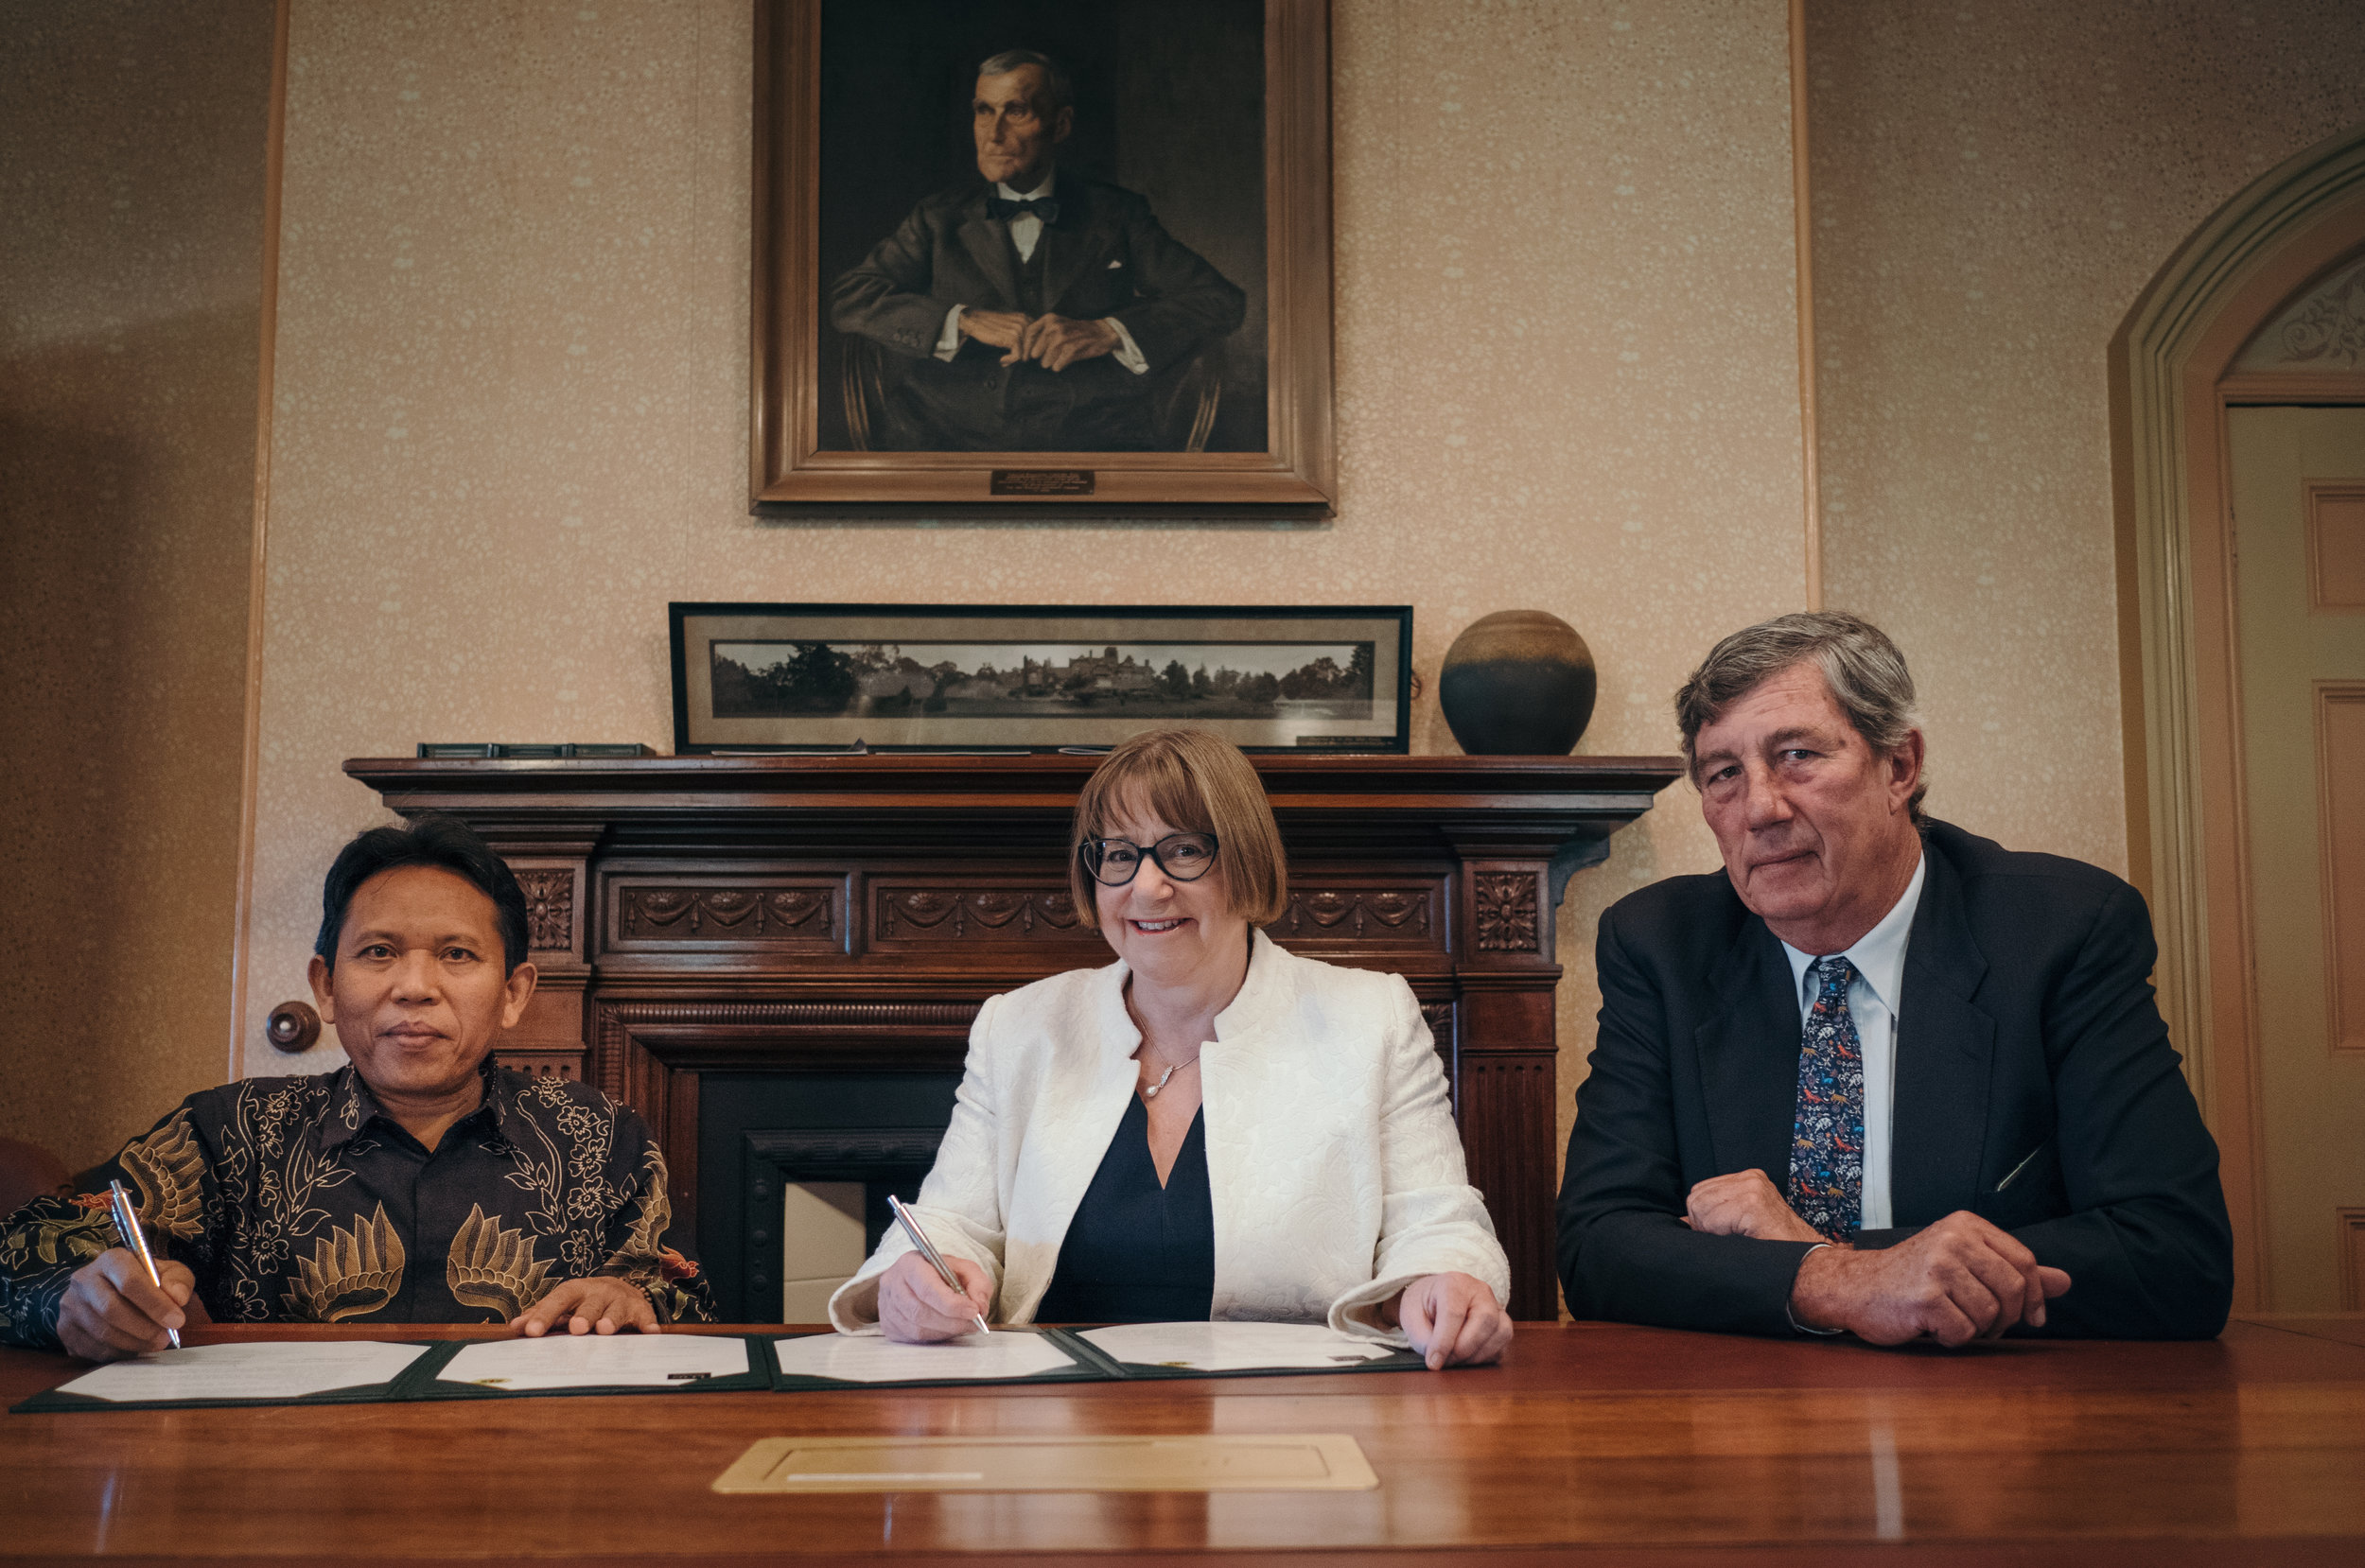 Rector of the University of Mataram, Professor Lalu Husni, signs the MoU with UNE Vice-chancellor, Professor Annabelle Duncan, and Chancellor James Harris.  Photo: Matthew Cawood